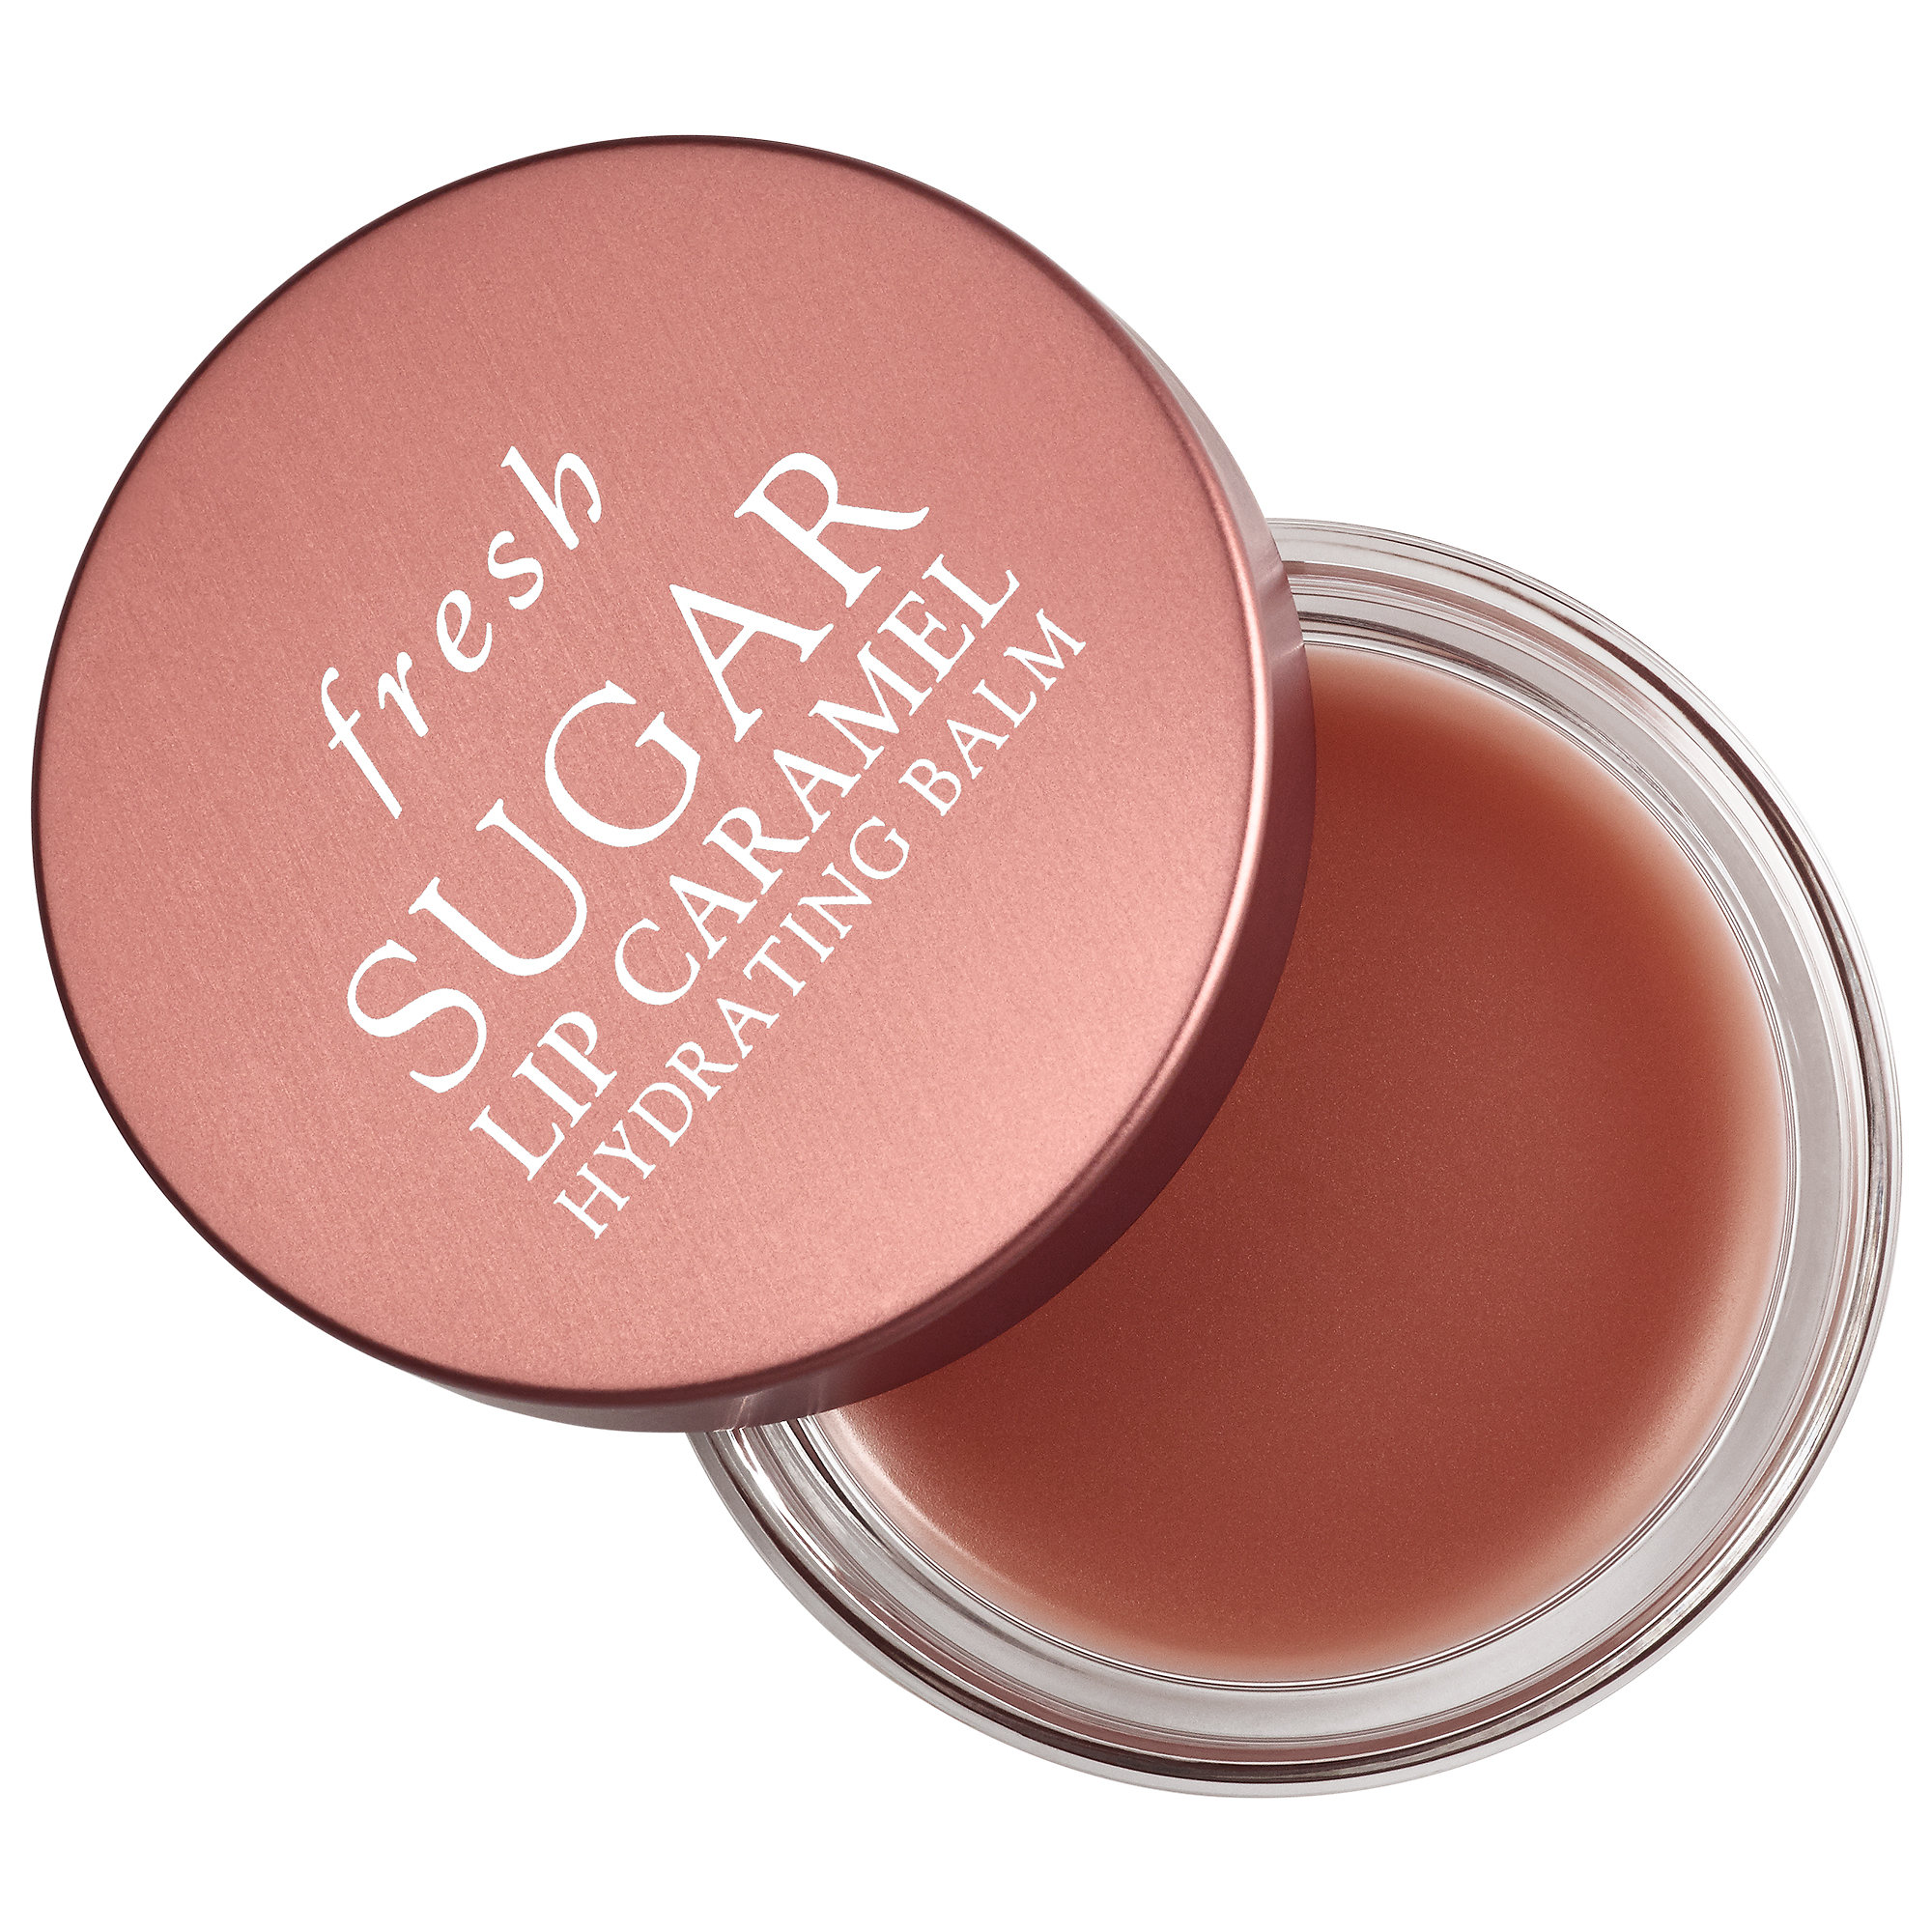 Fresh - Sugar Hydrating Lip Balm